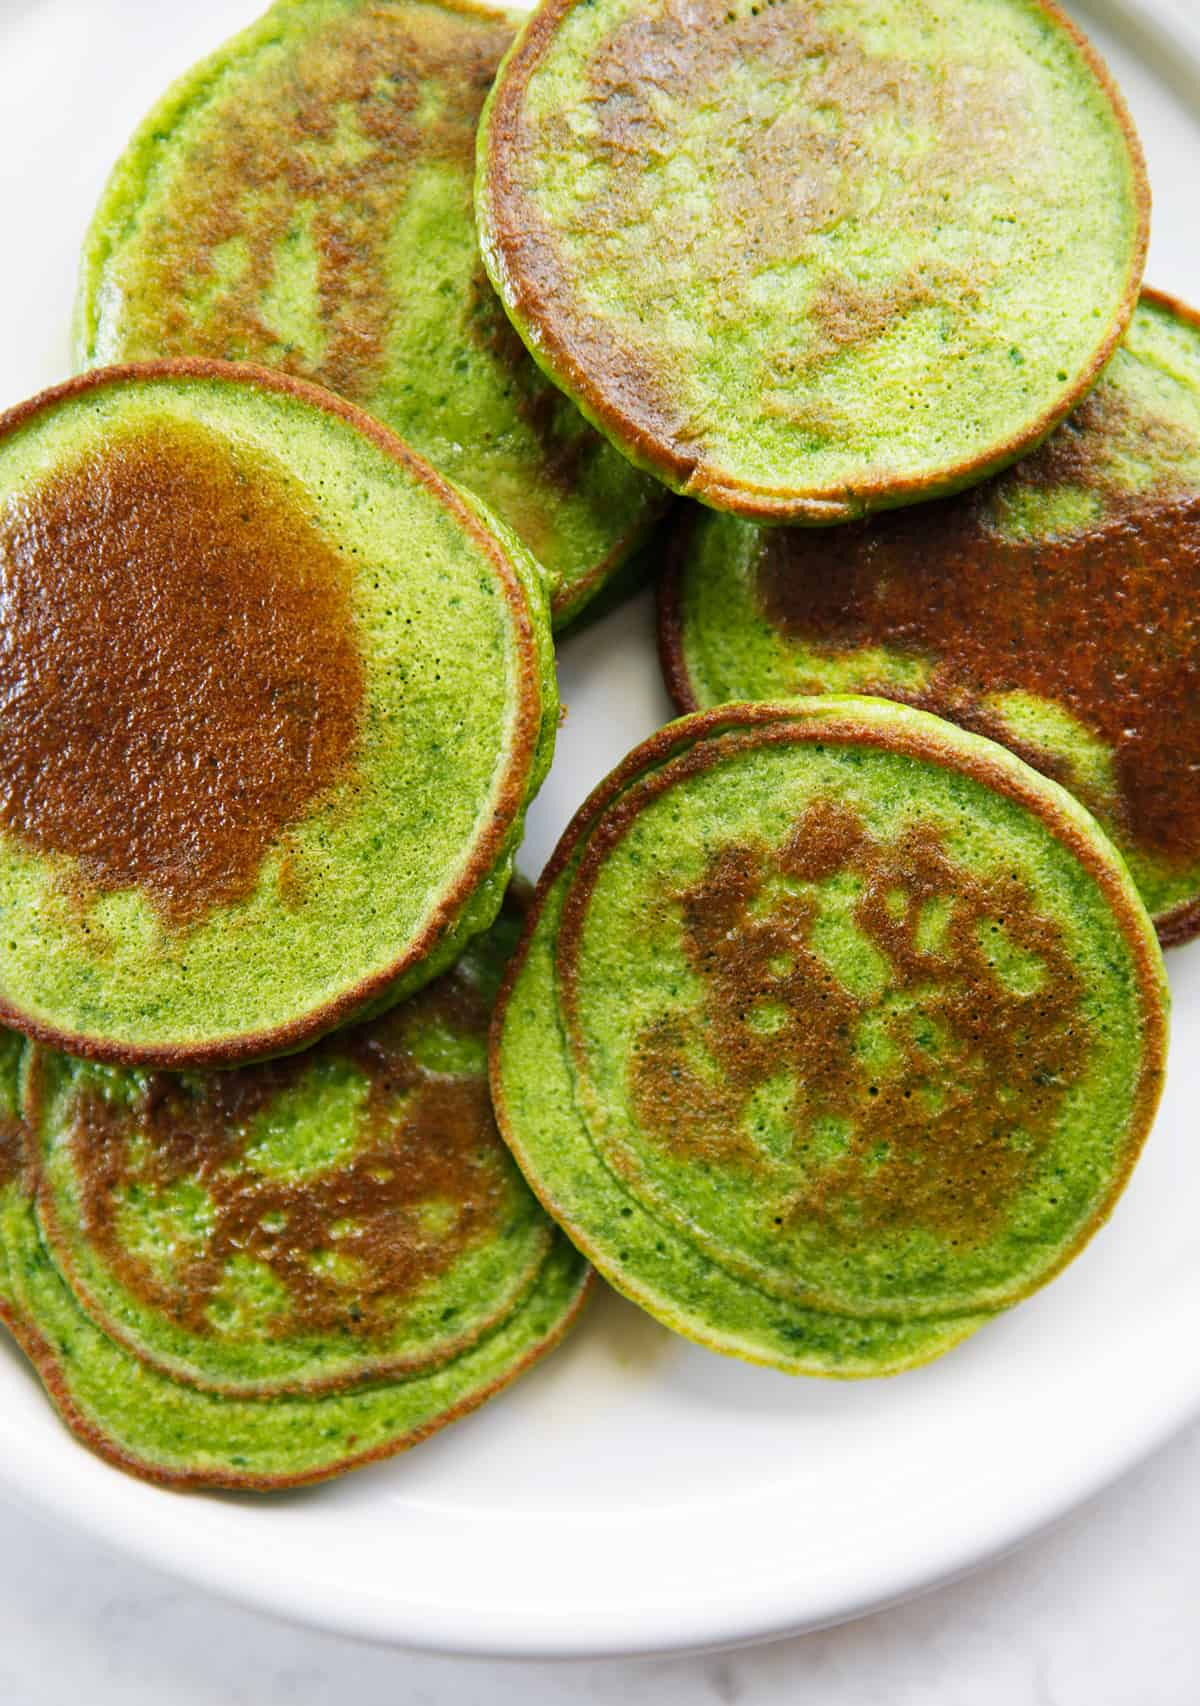 A plate full of spinach pancakes that are bright green.